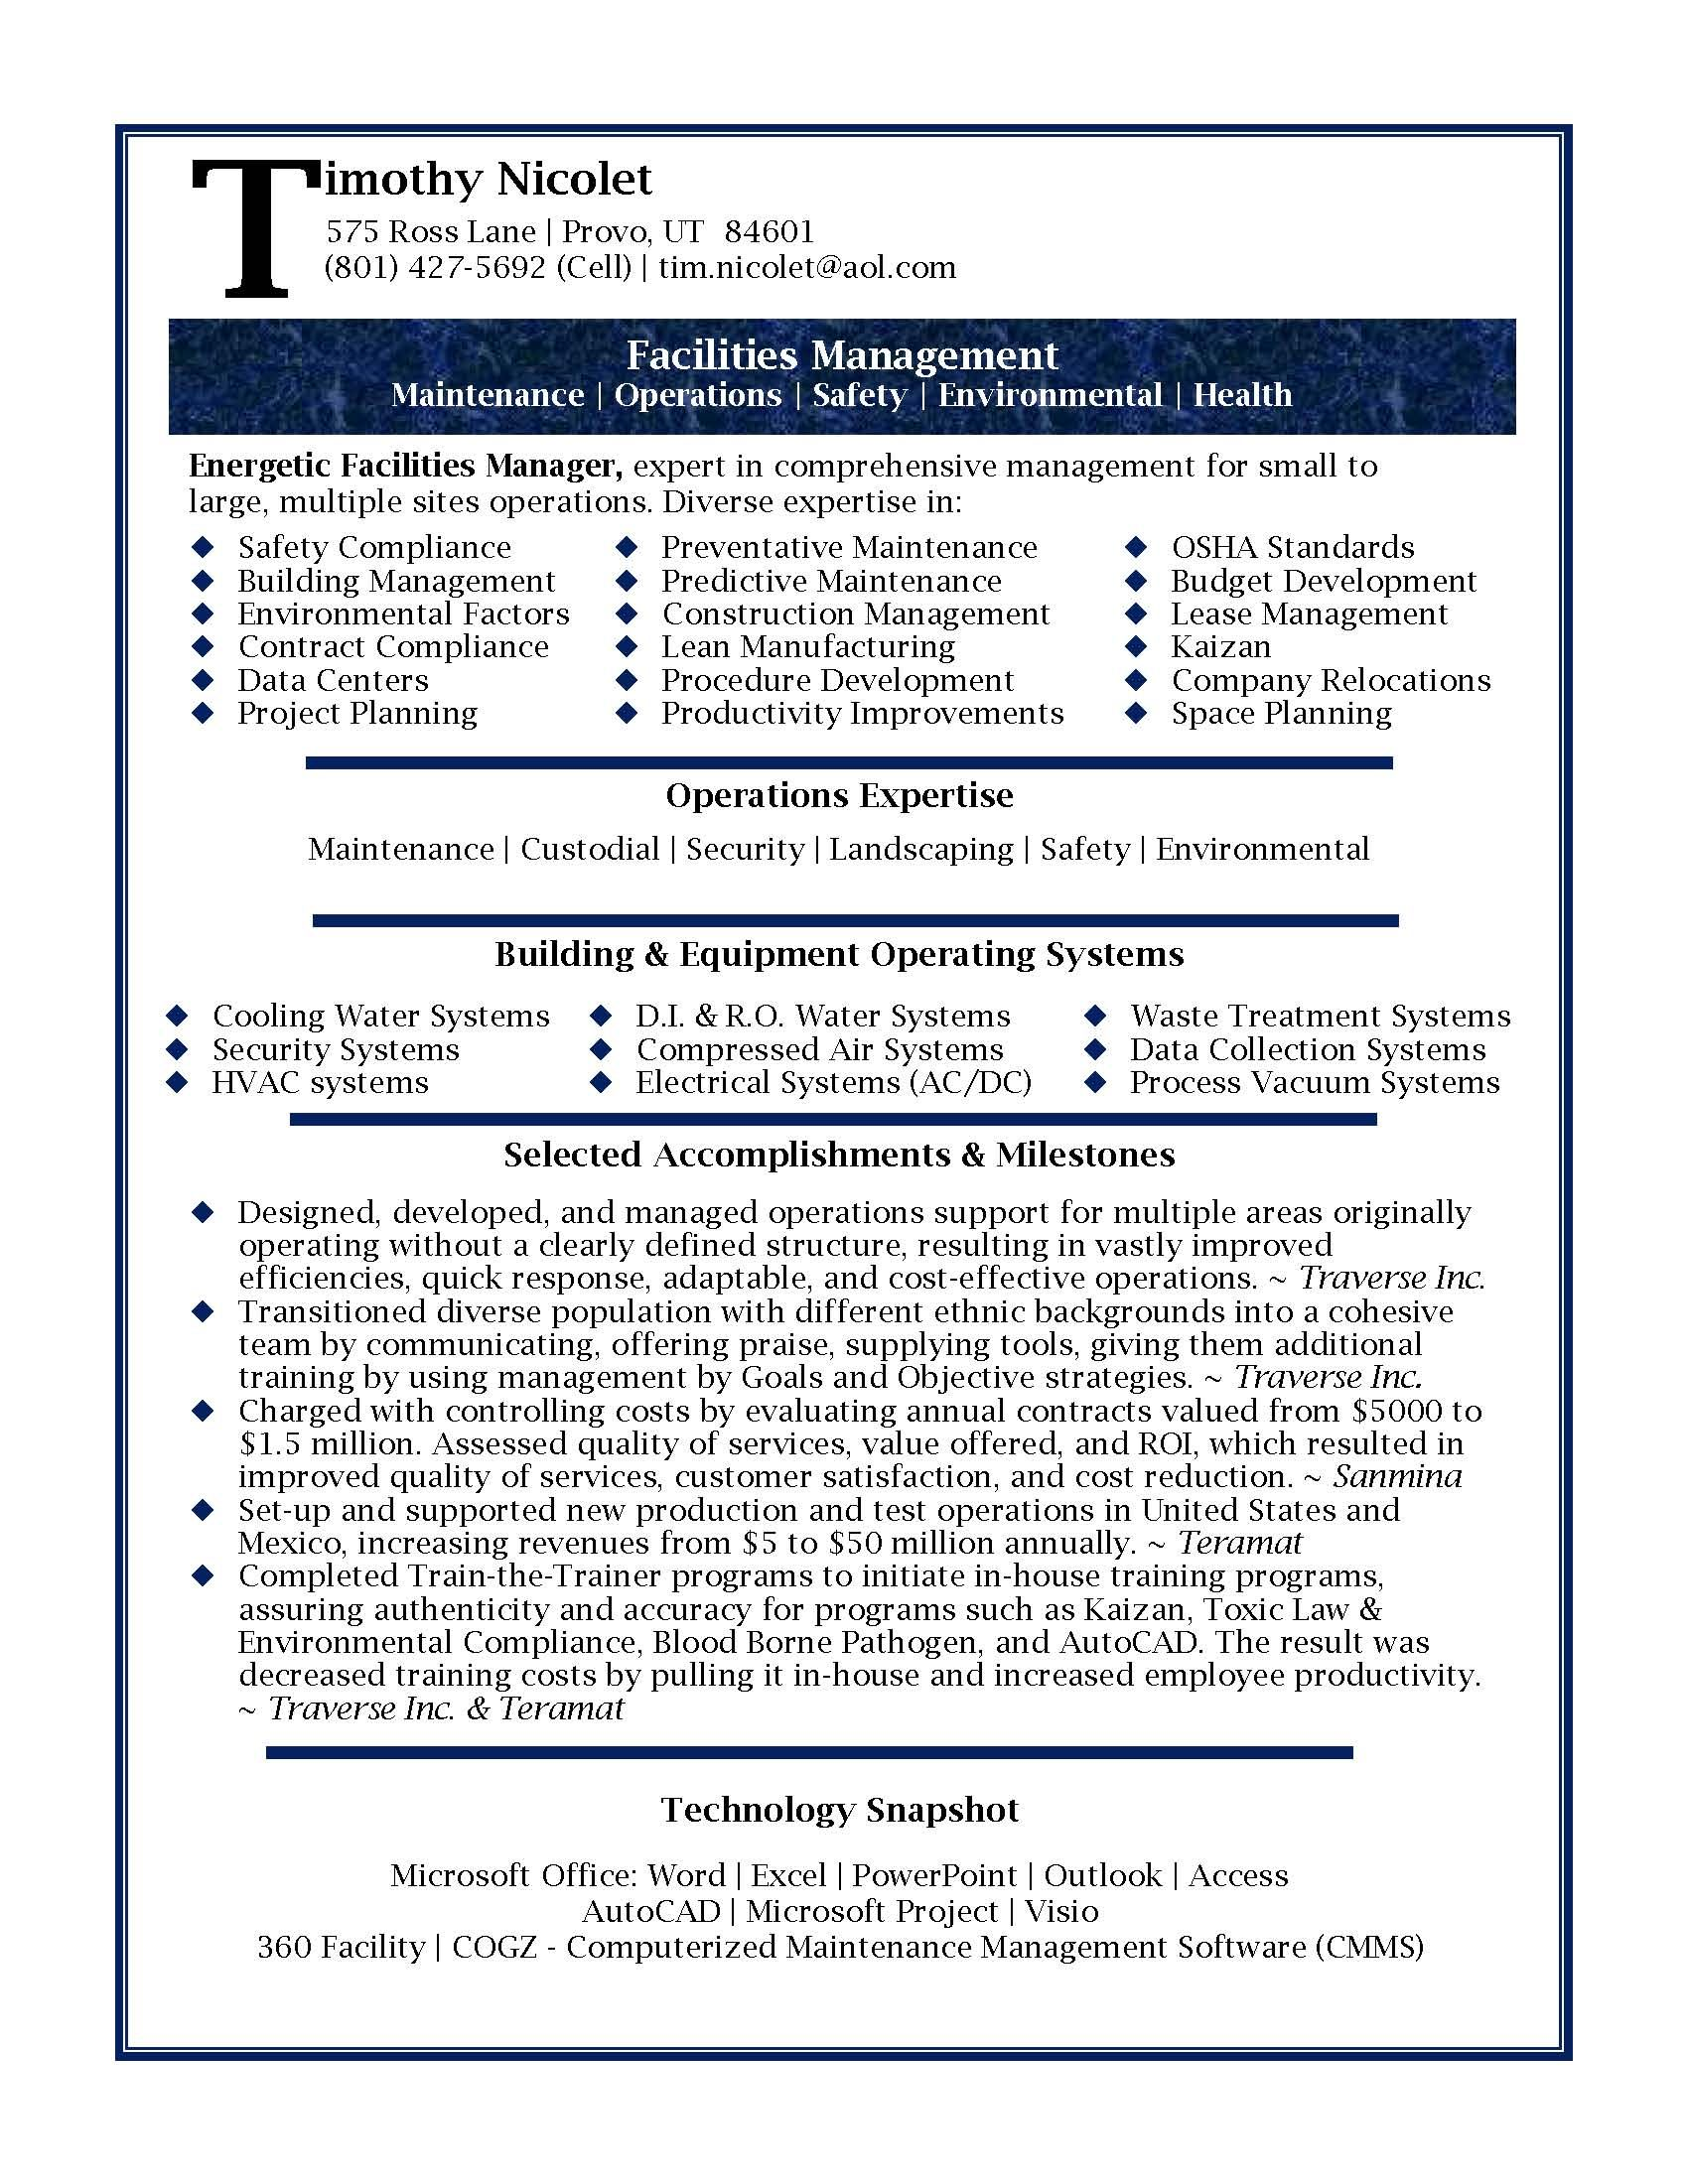 resume samples professional facilities manager resume sample - Top 10 Resumes Samples